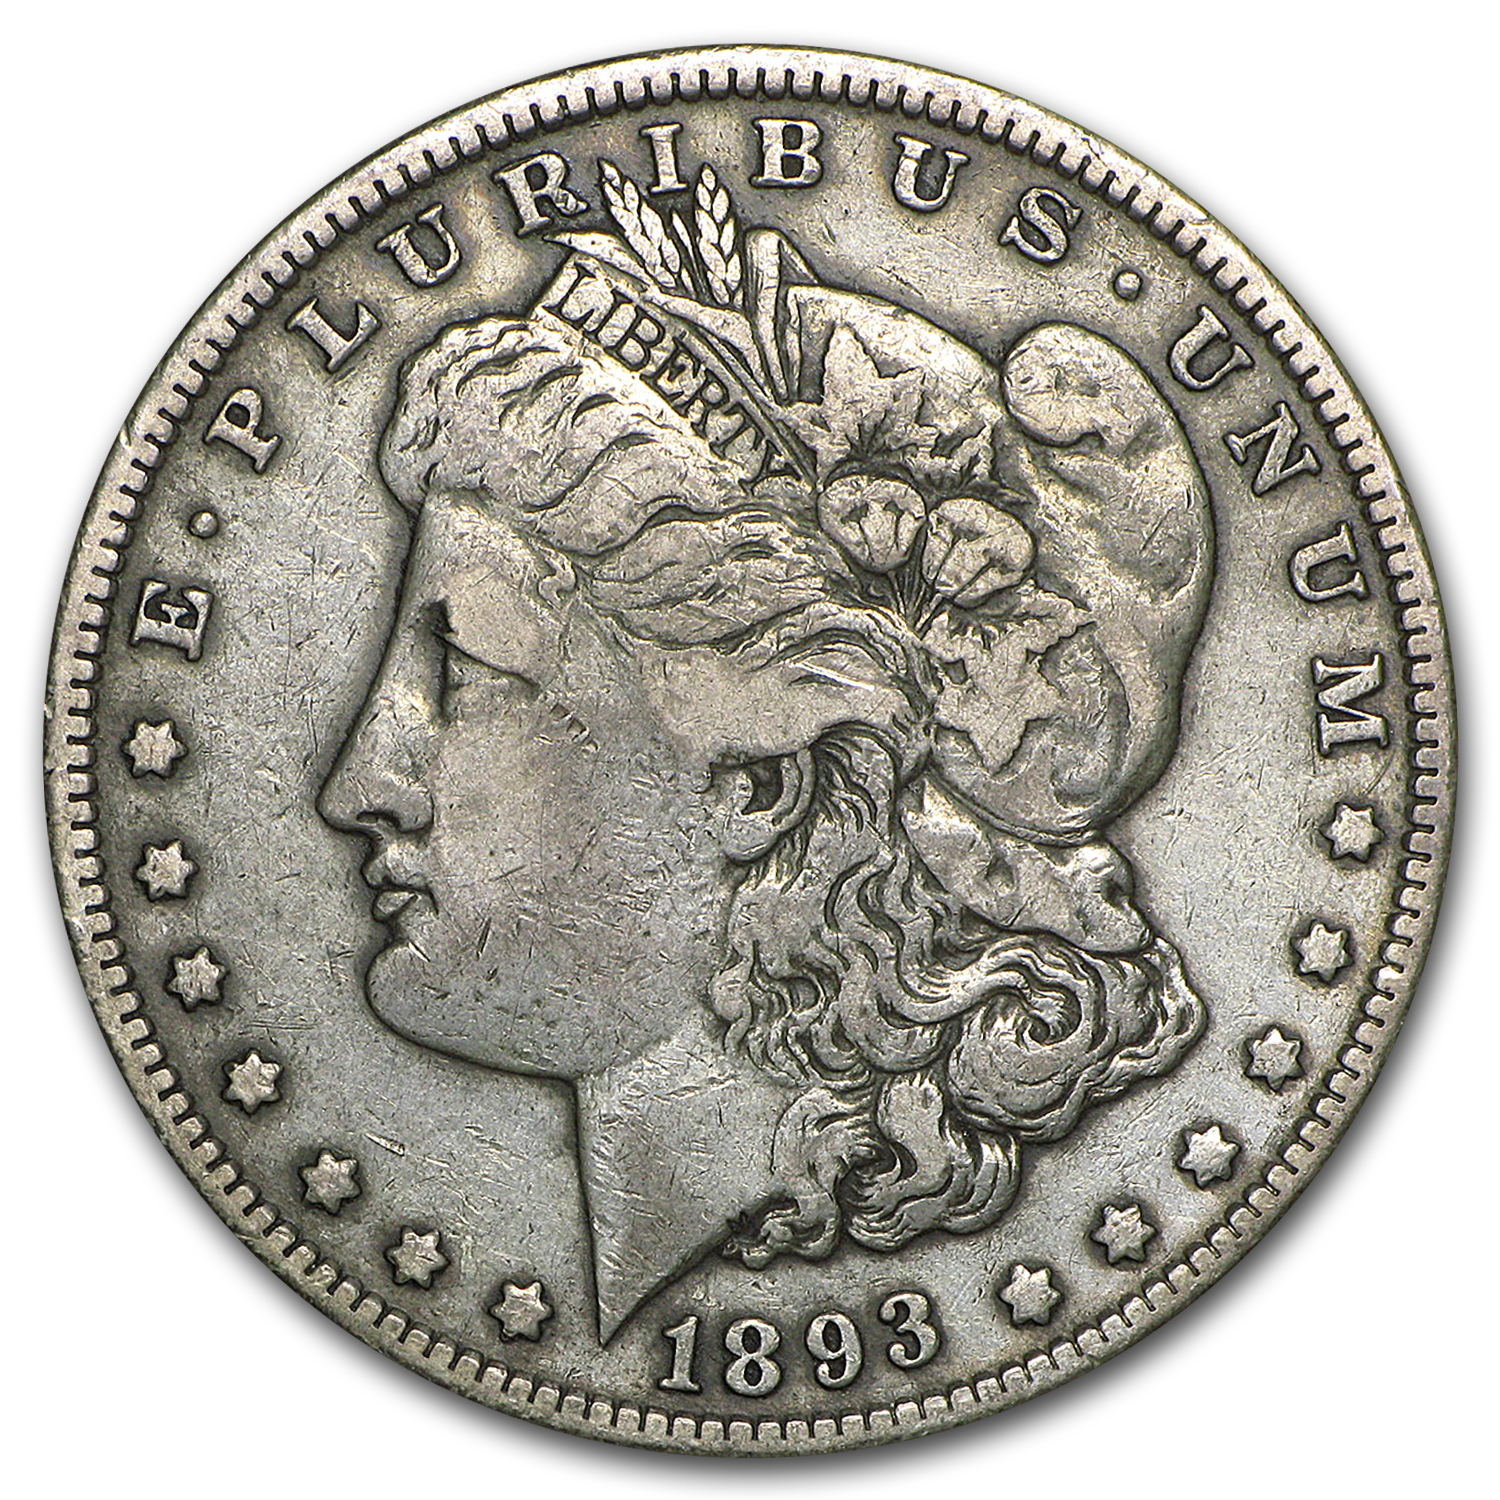 1893 Morgan Dollar Fine